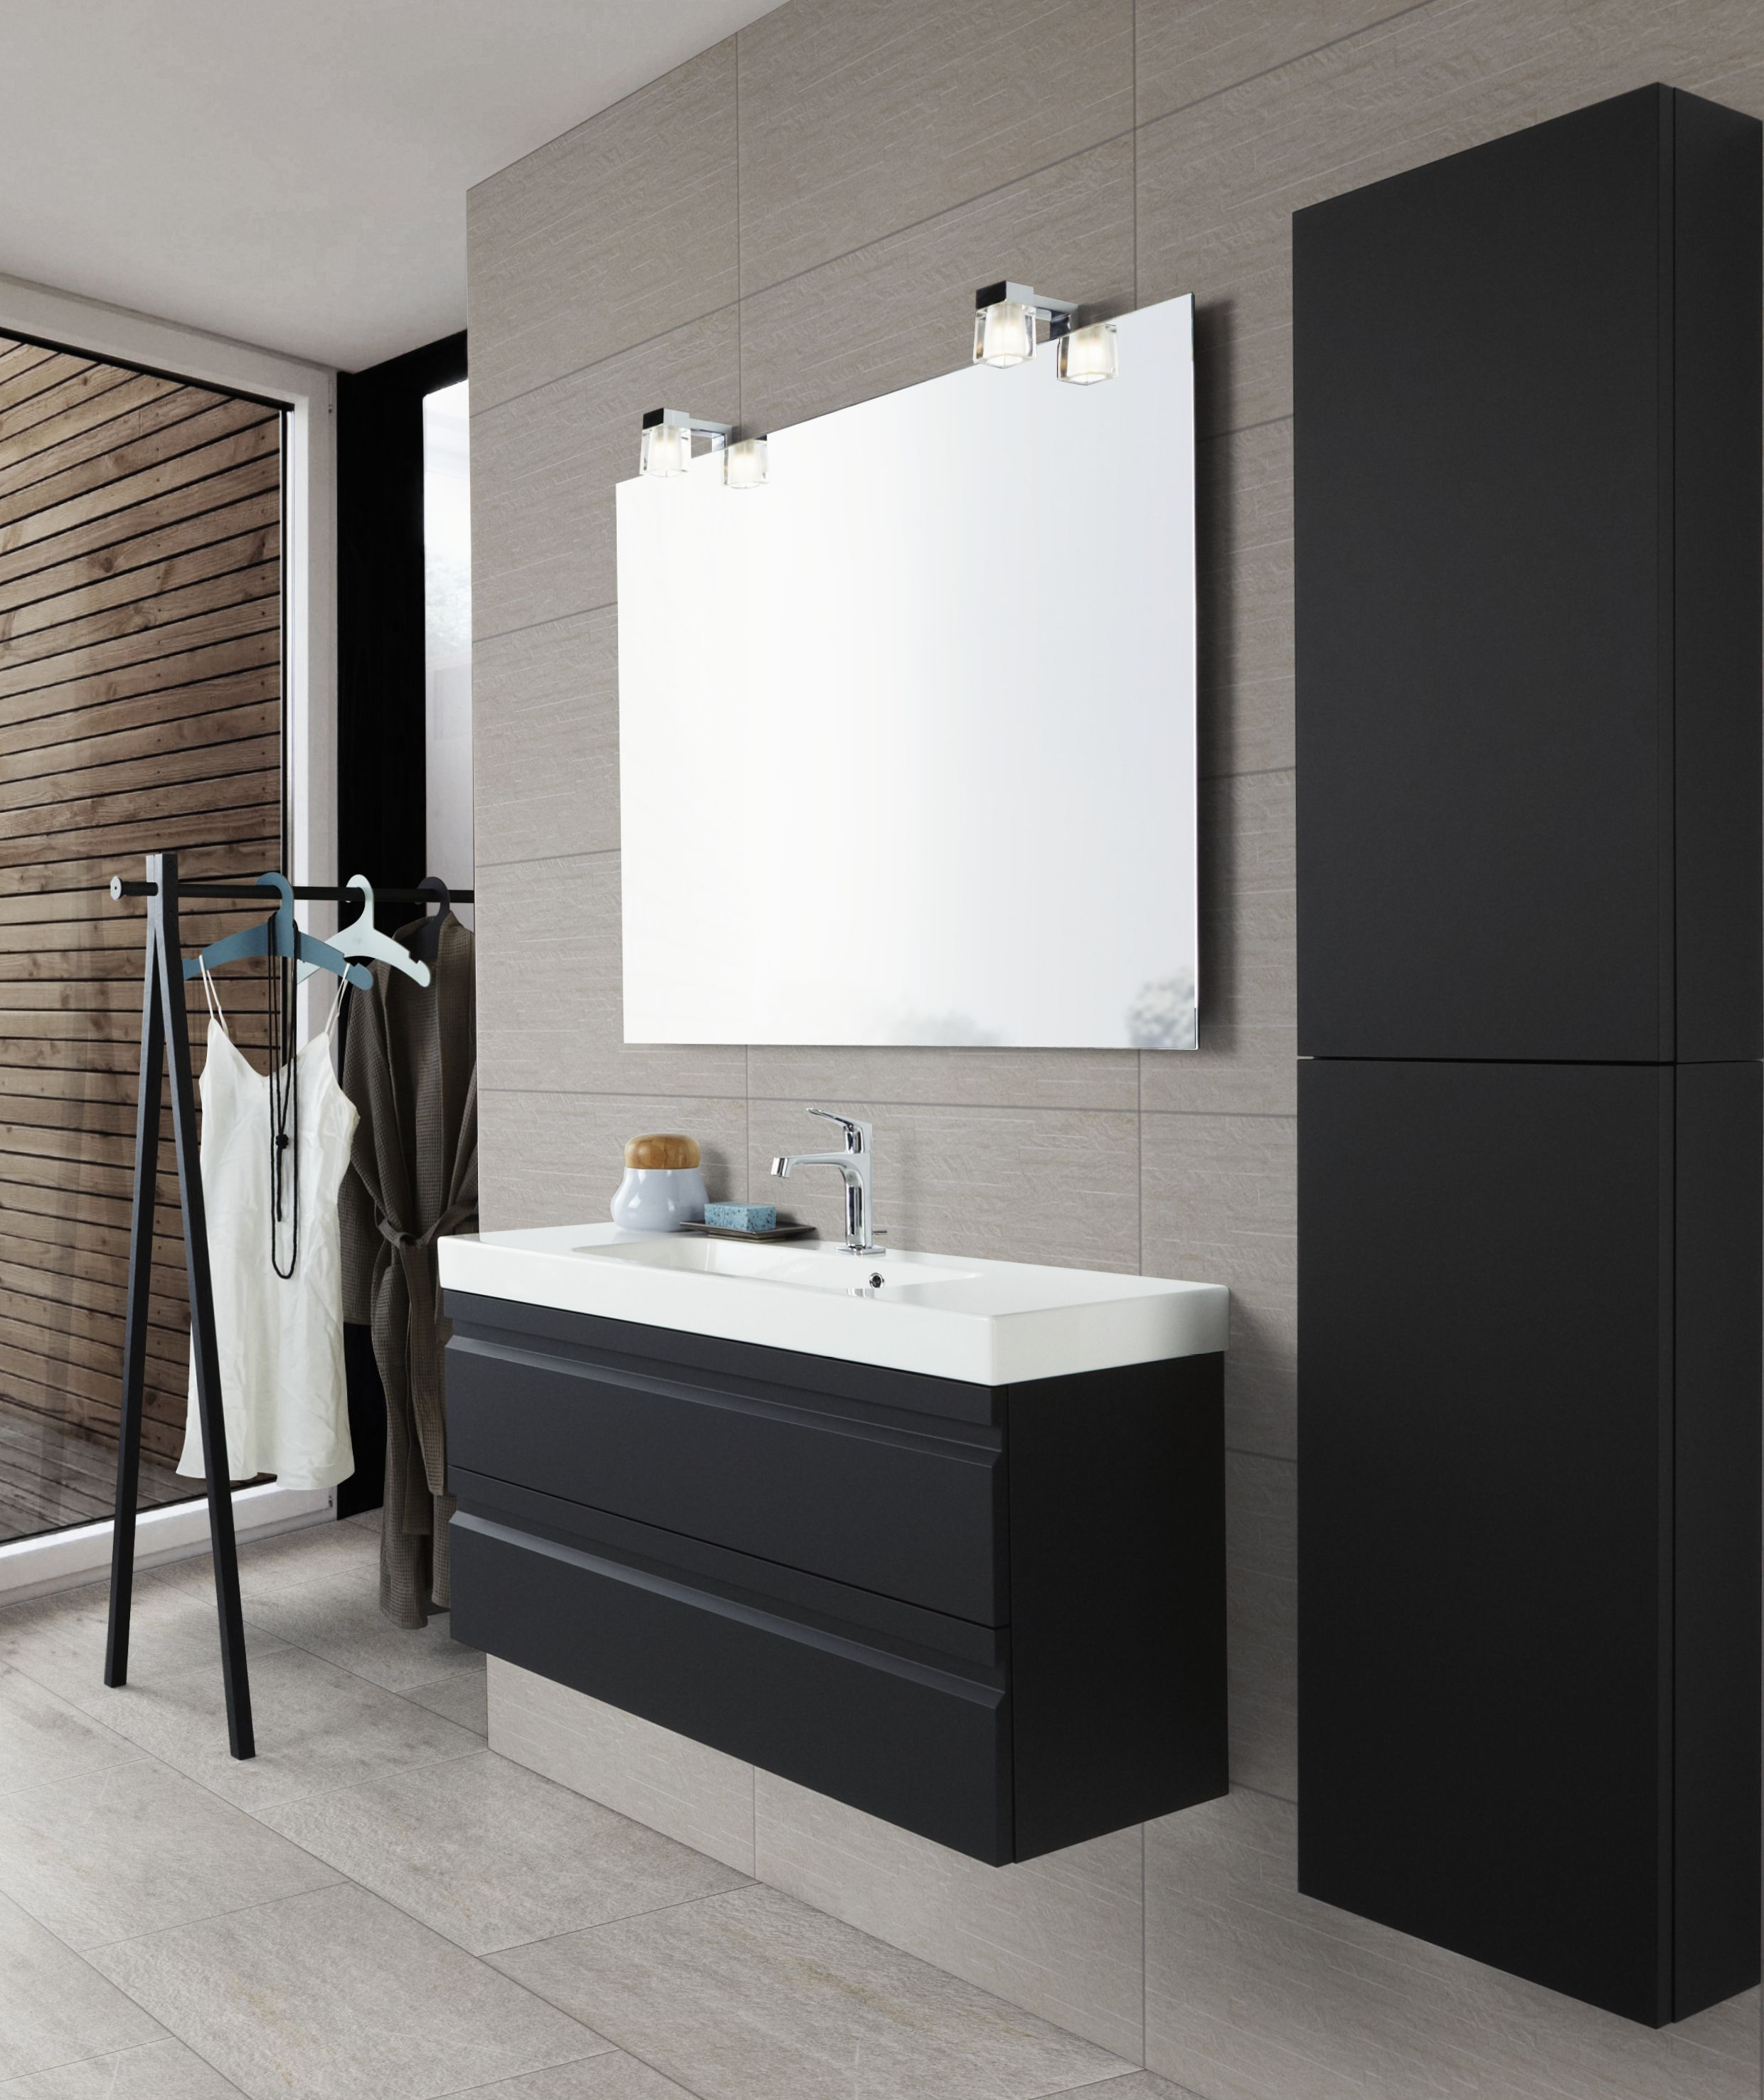 Dansani Menuet Washbasin Not So Deep Quite Smart Anyhow Furnishing Tip Use Two Wall Cabinets Placed On Top Of Each Other Baderomsmobler Bad Inspirasjon